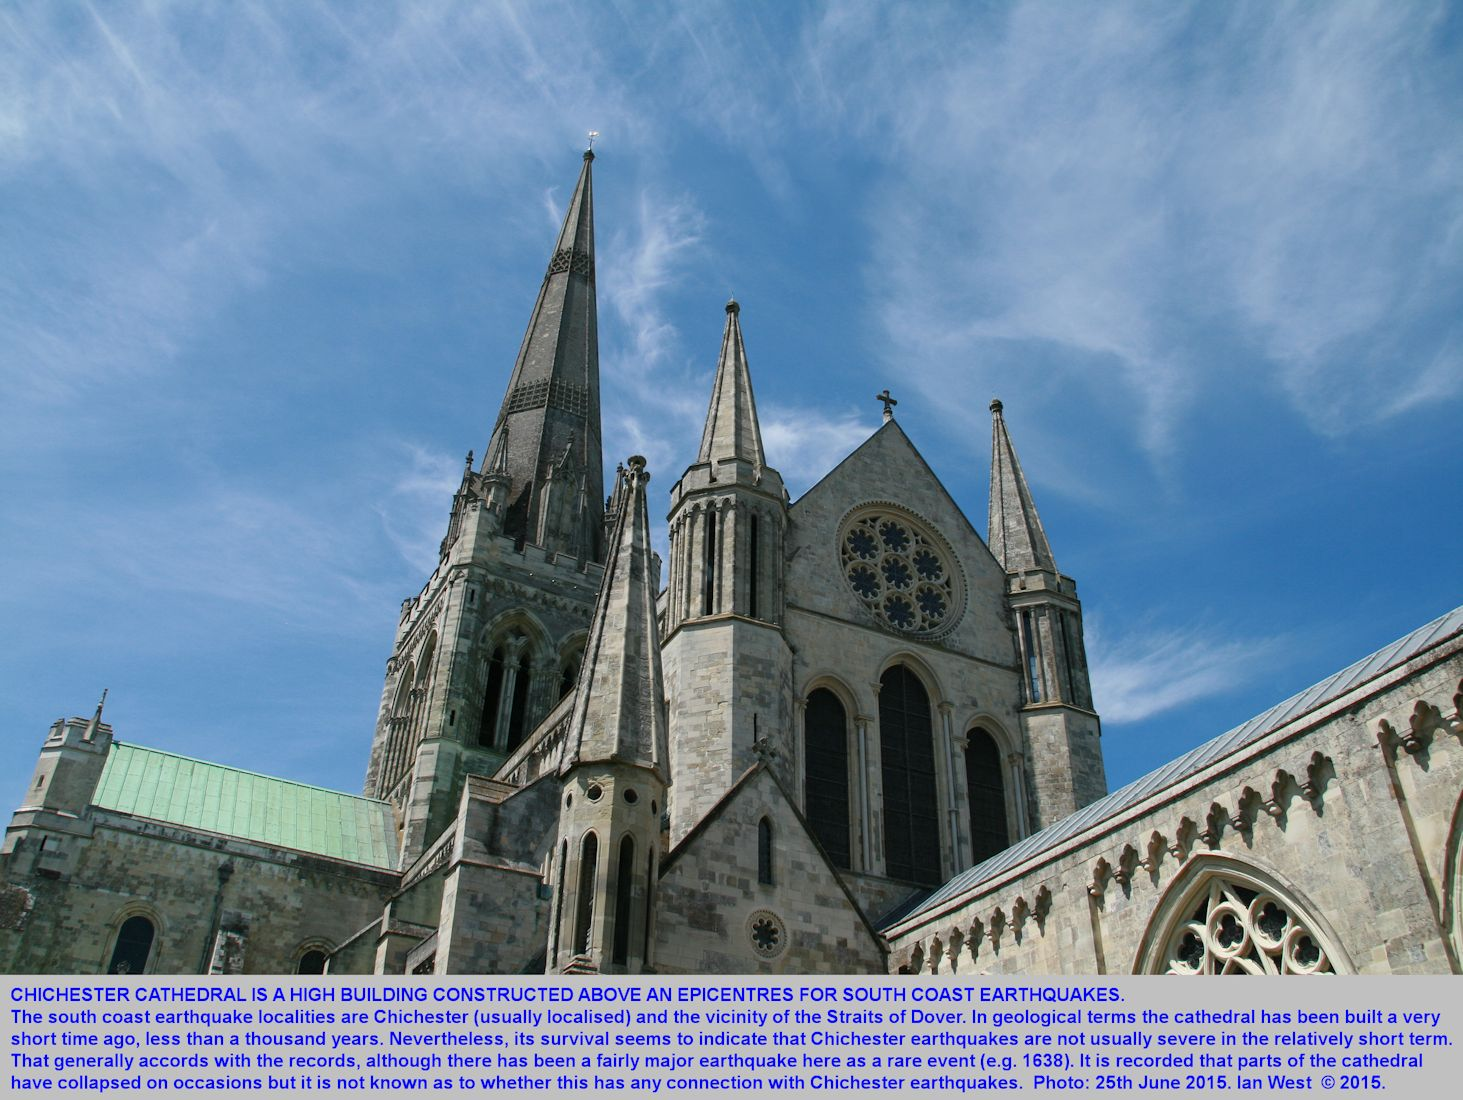 Chichester Cathedral spires, Chichester, Sussex, June 2015